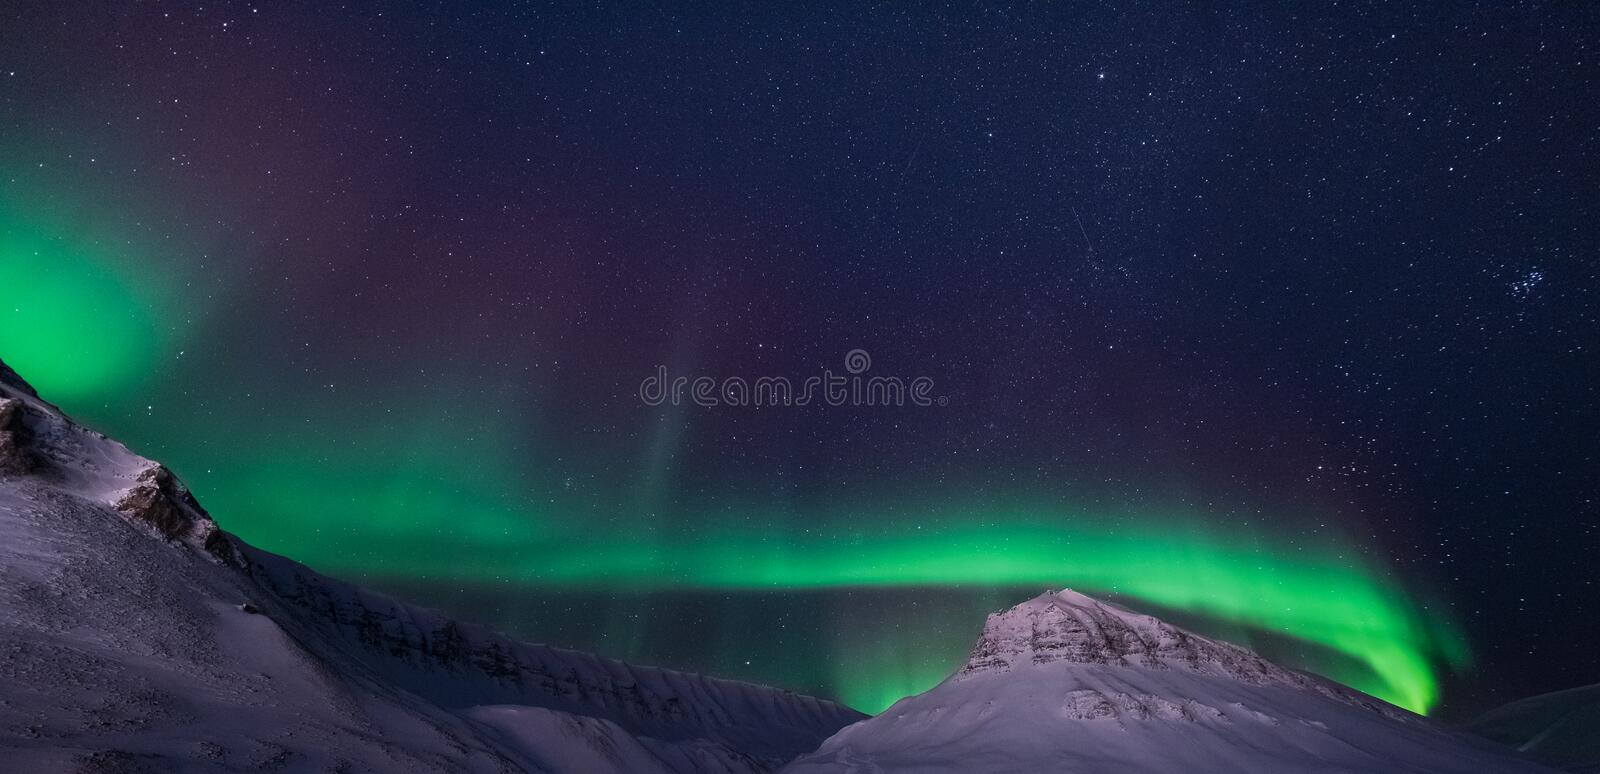 The polar arctic Northern lights aurora borealis sky star in Norway Svalbard Longyearbyen city snowscooter mountains royalty free stock image